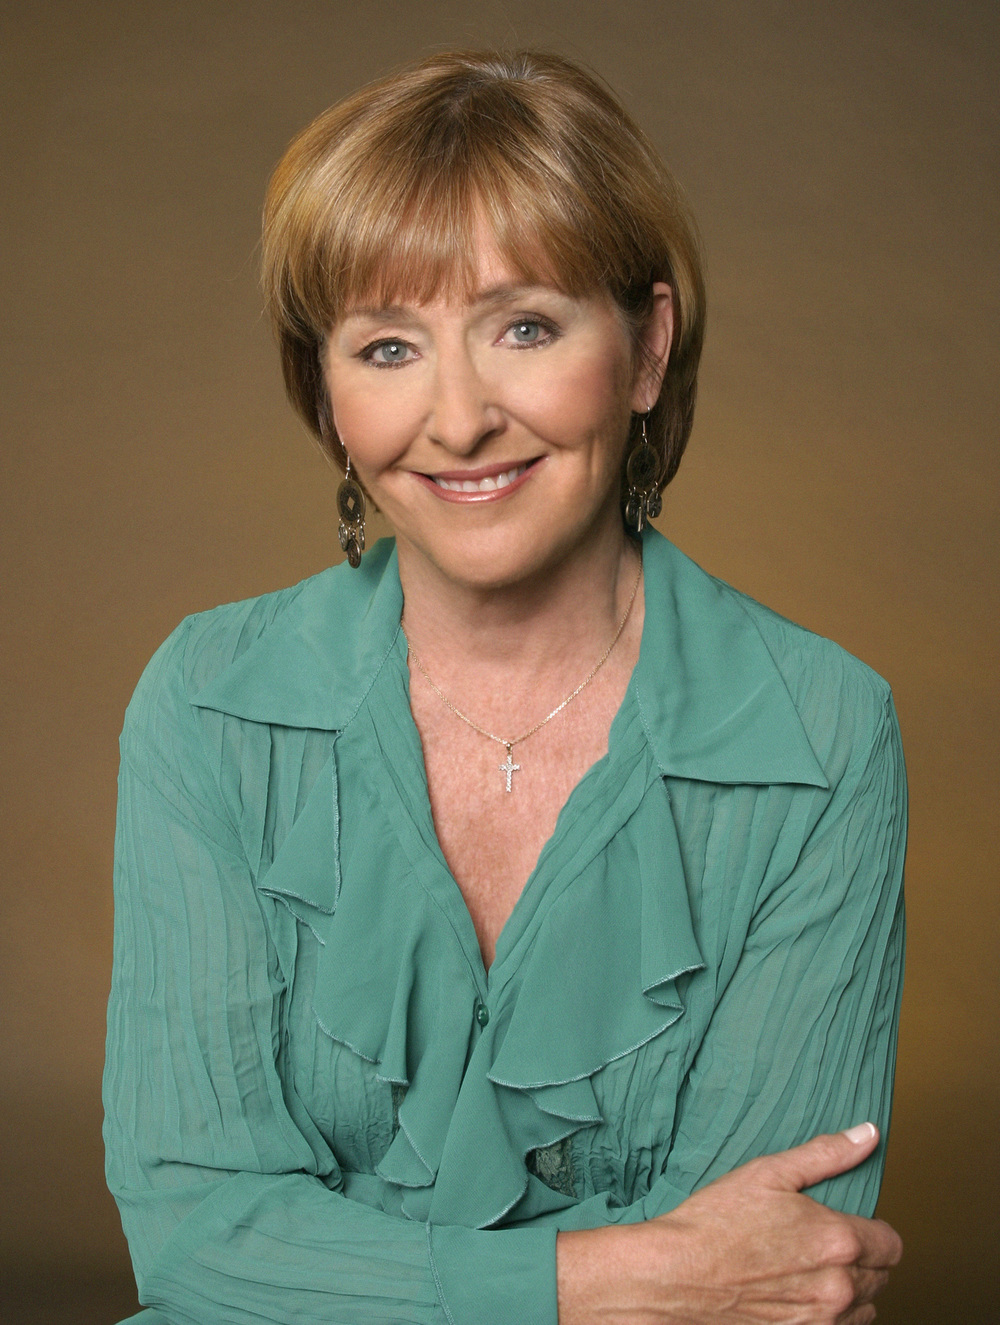 Internationally-acclaimed mezzo-soprano, Frederica von Stade